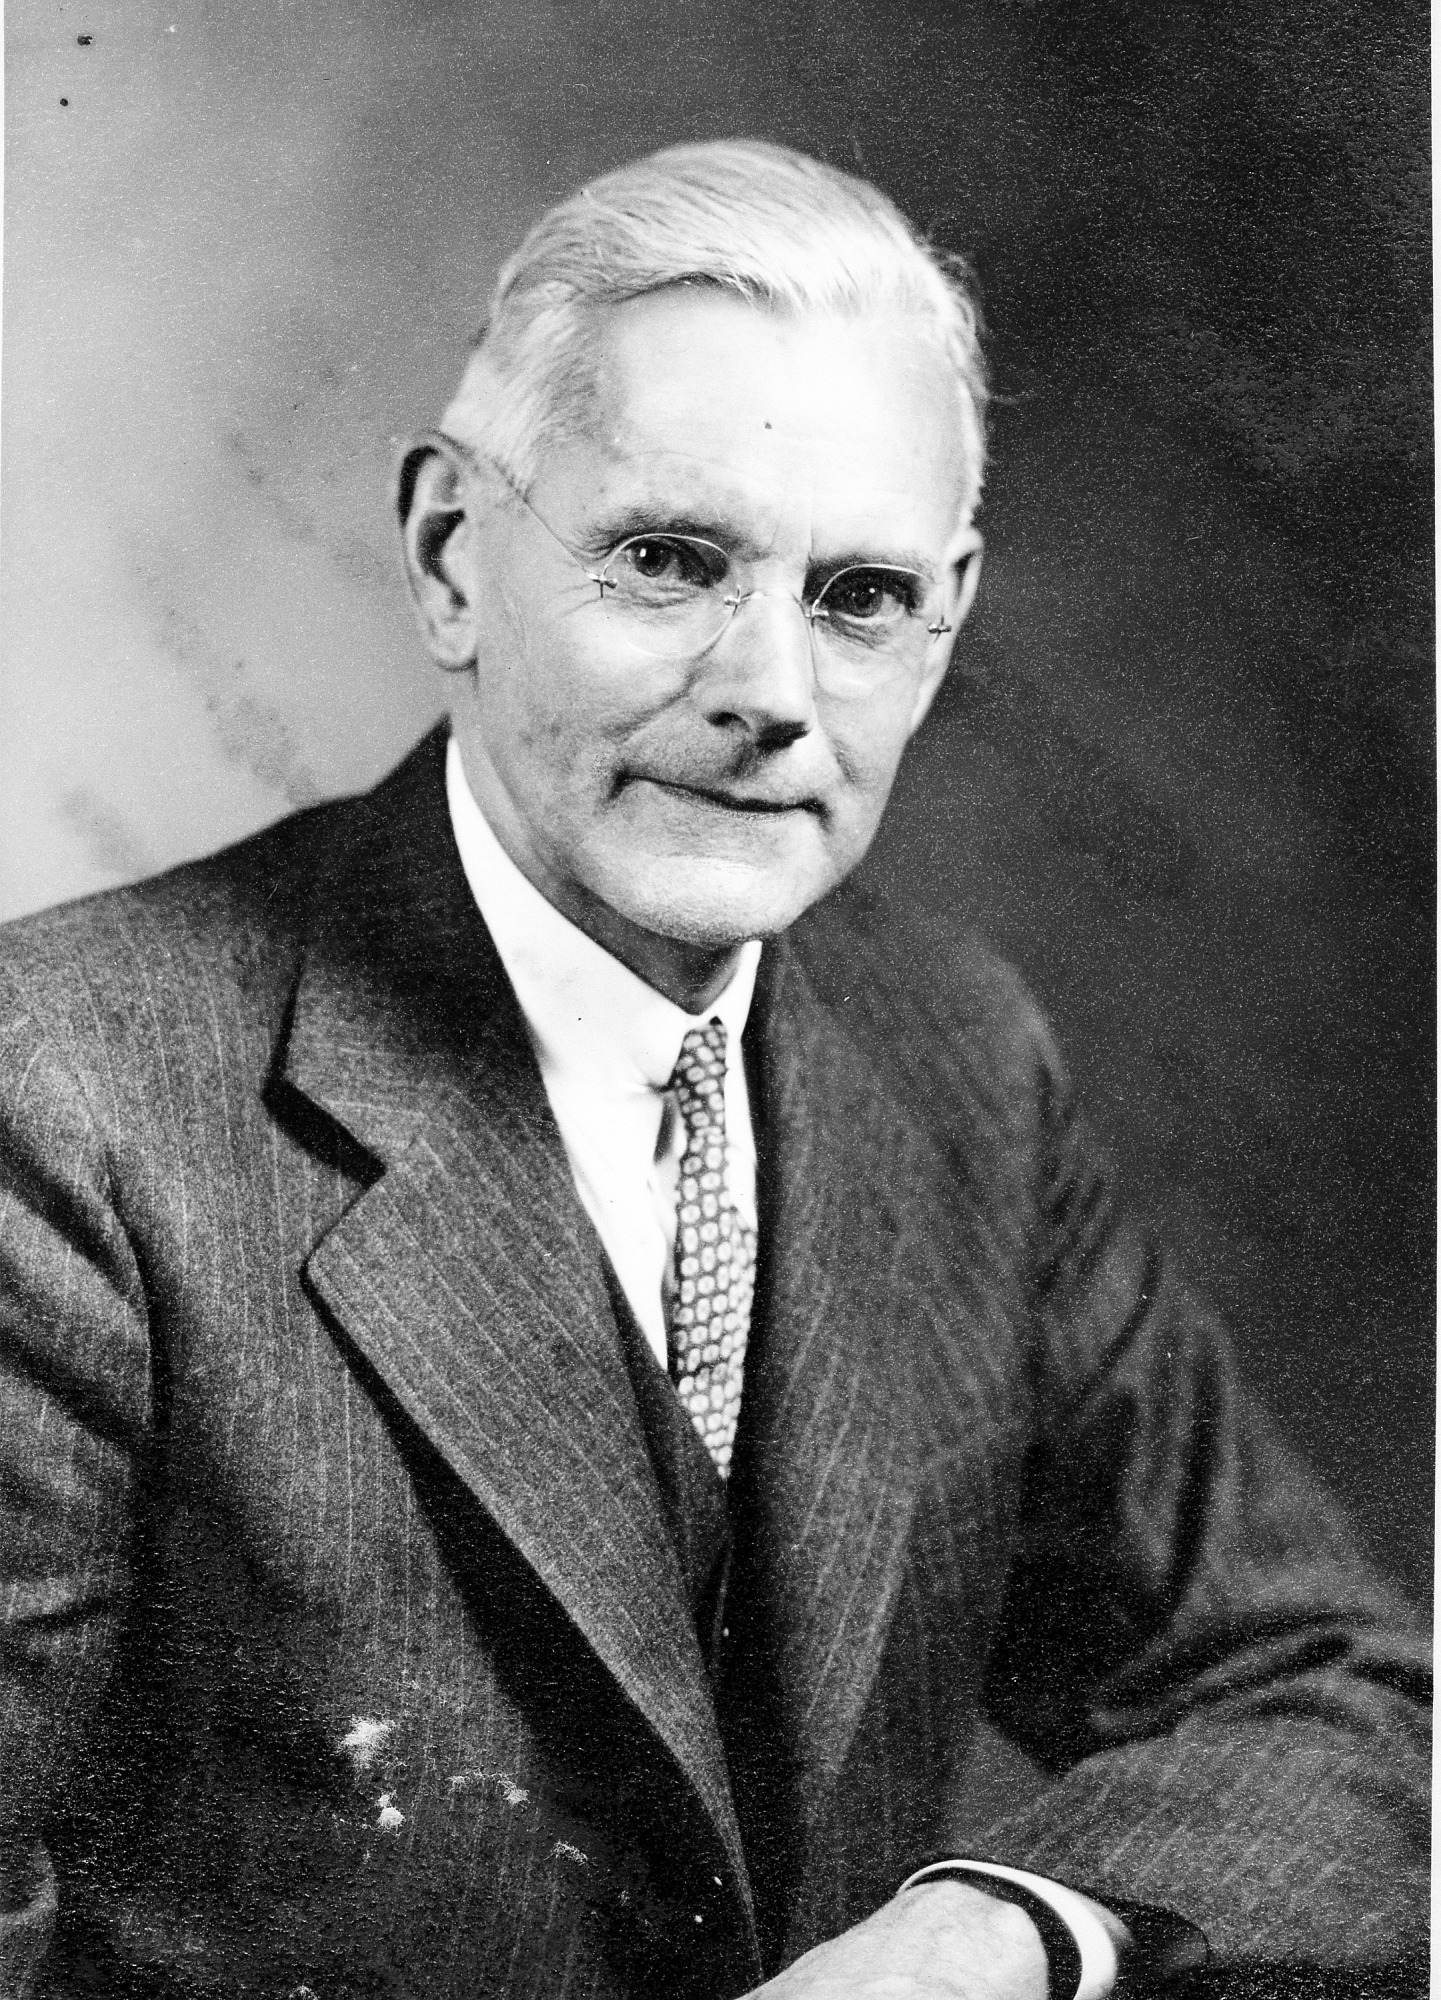 Alexander Wetmore Elected Secretary, January 12, 1945, Smithsonian Archives - History Div.